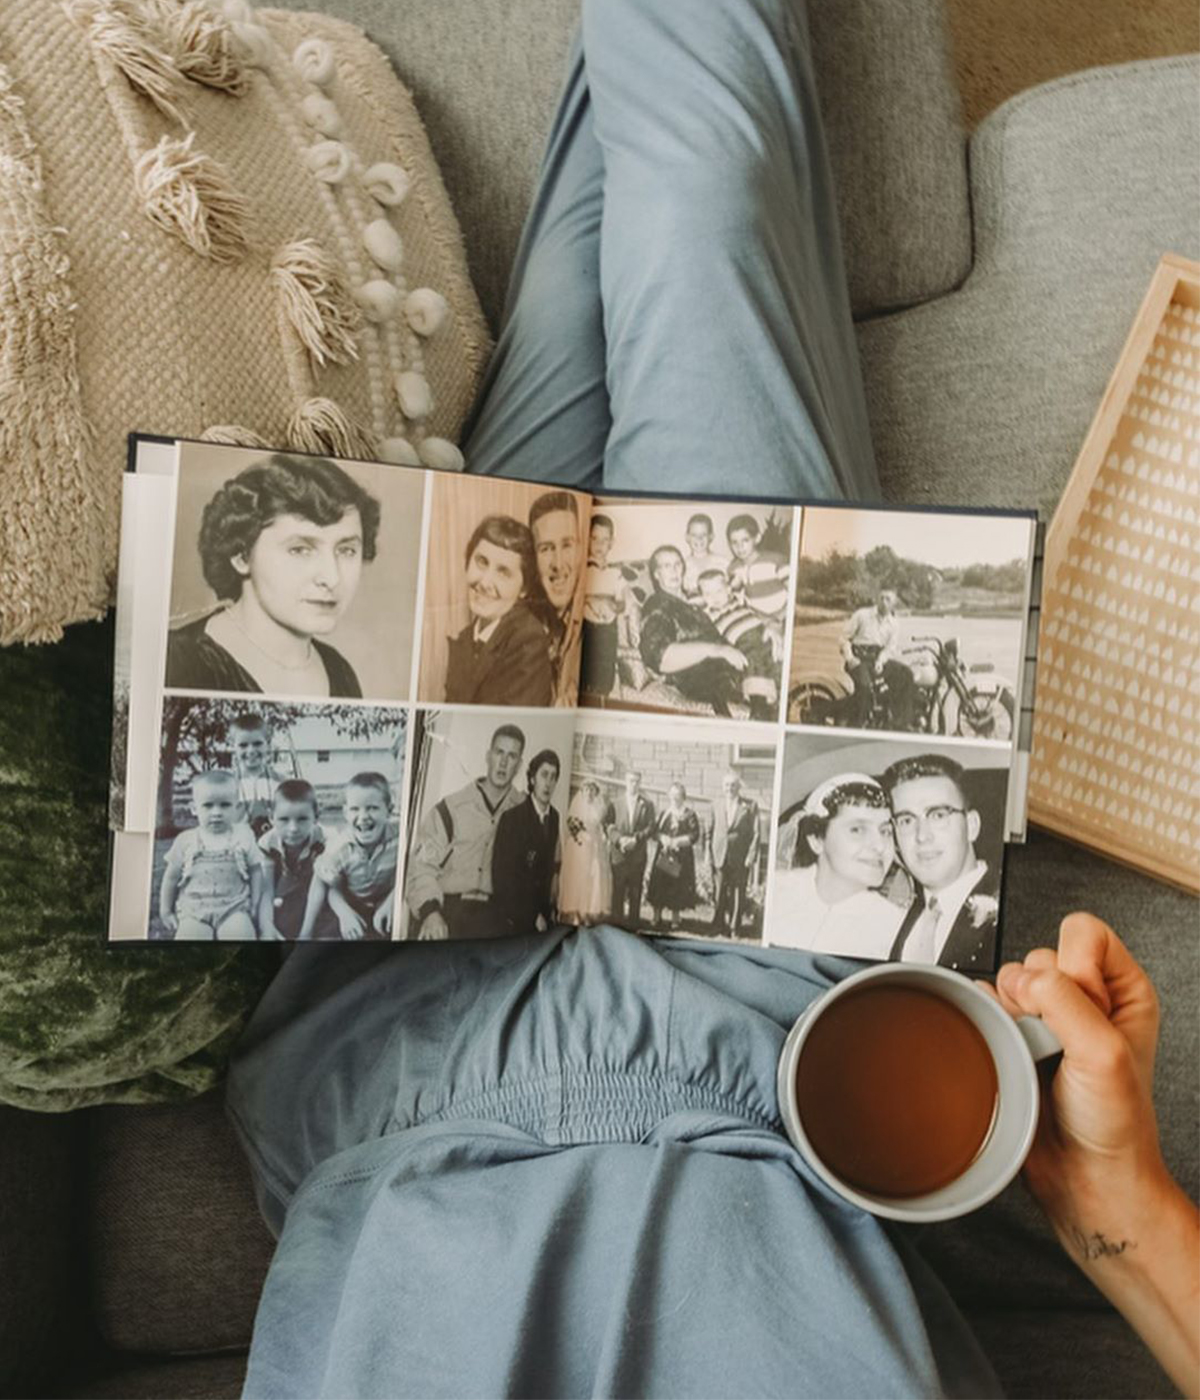 Family history book open on woman's lap